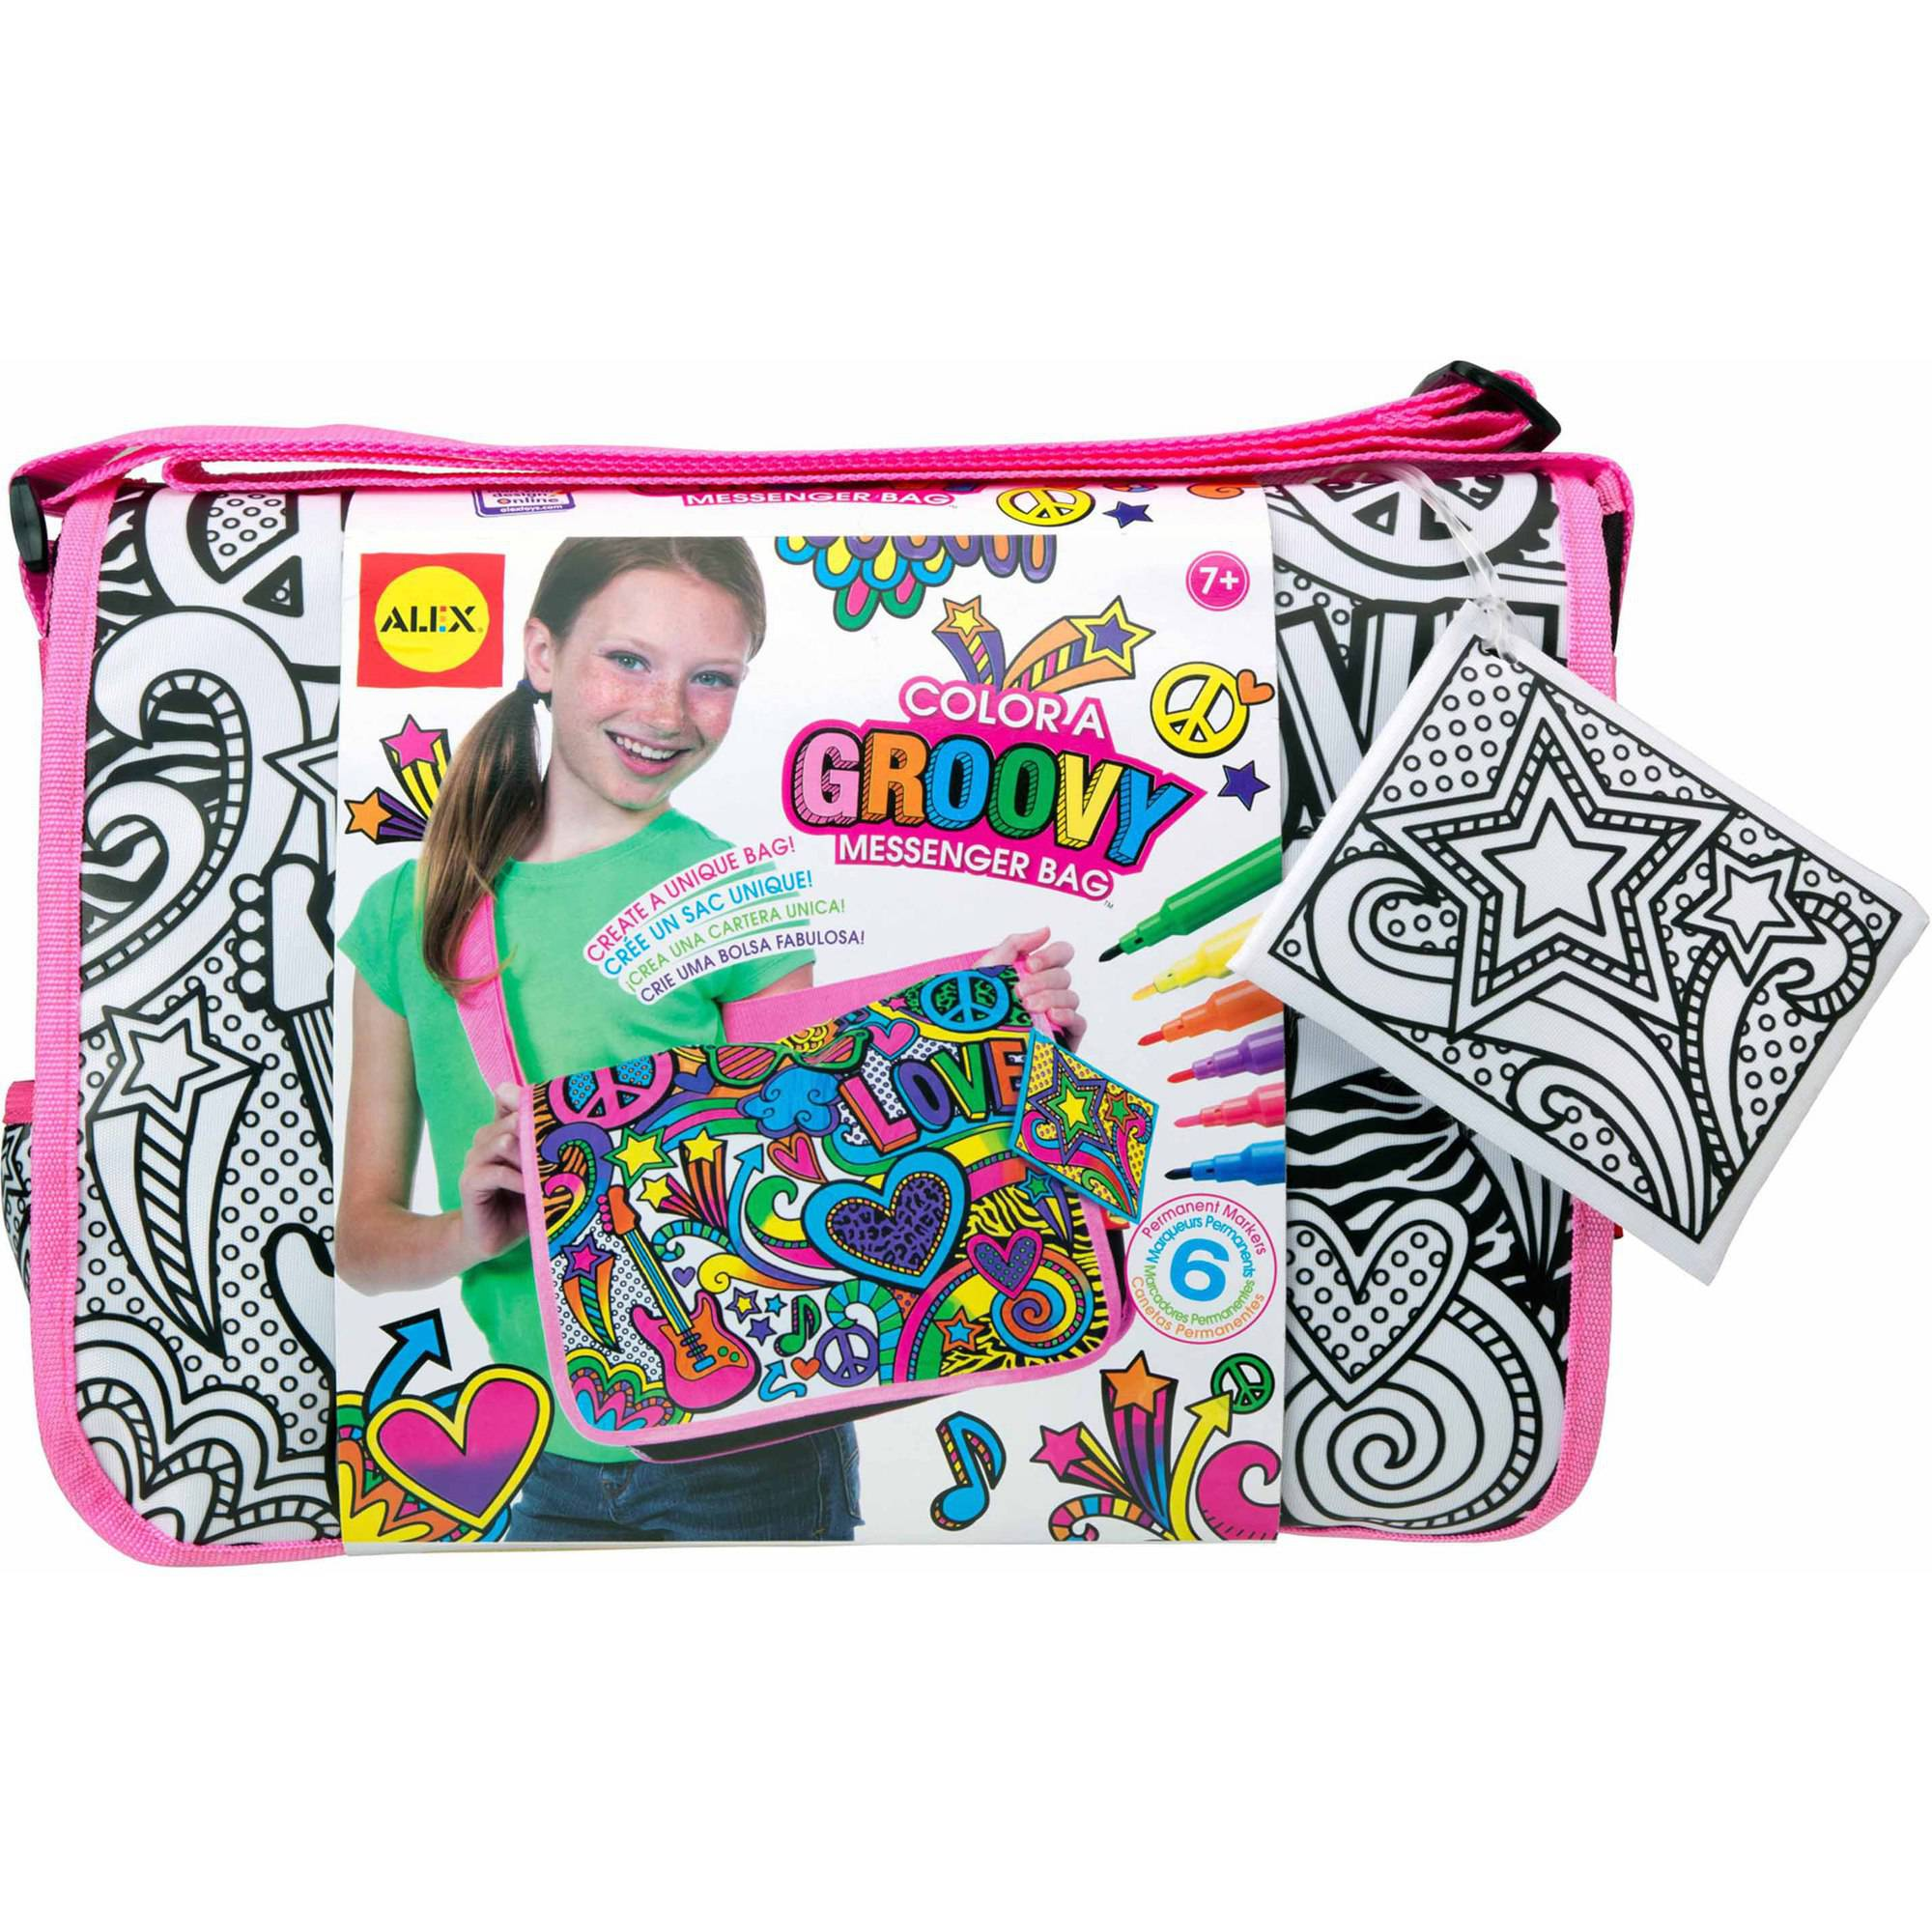 ALEX Toys Color a Bag and Accessories, Color a Groovy Messenger Bag